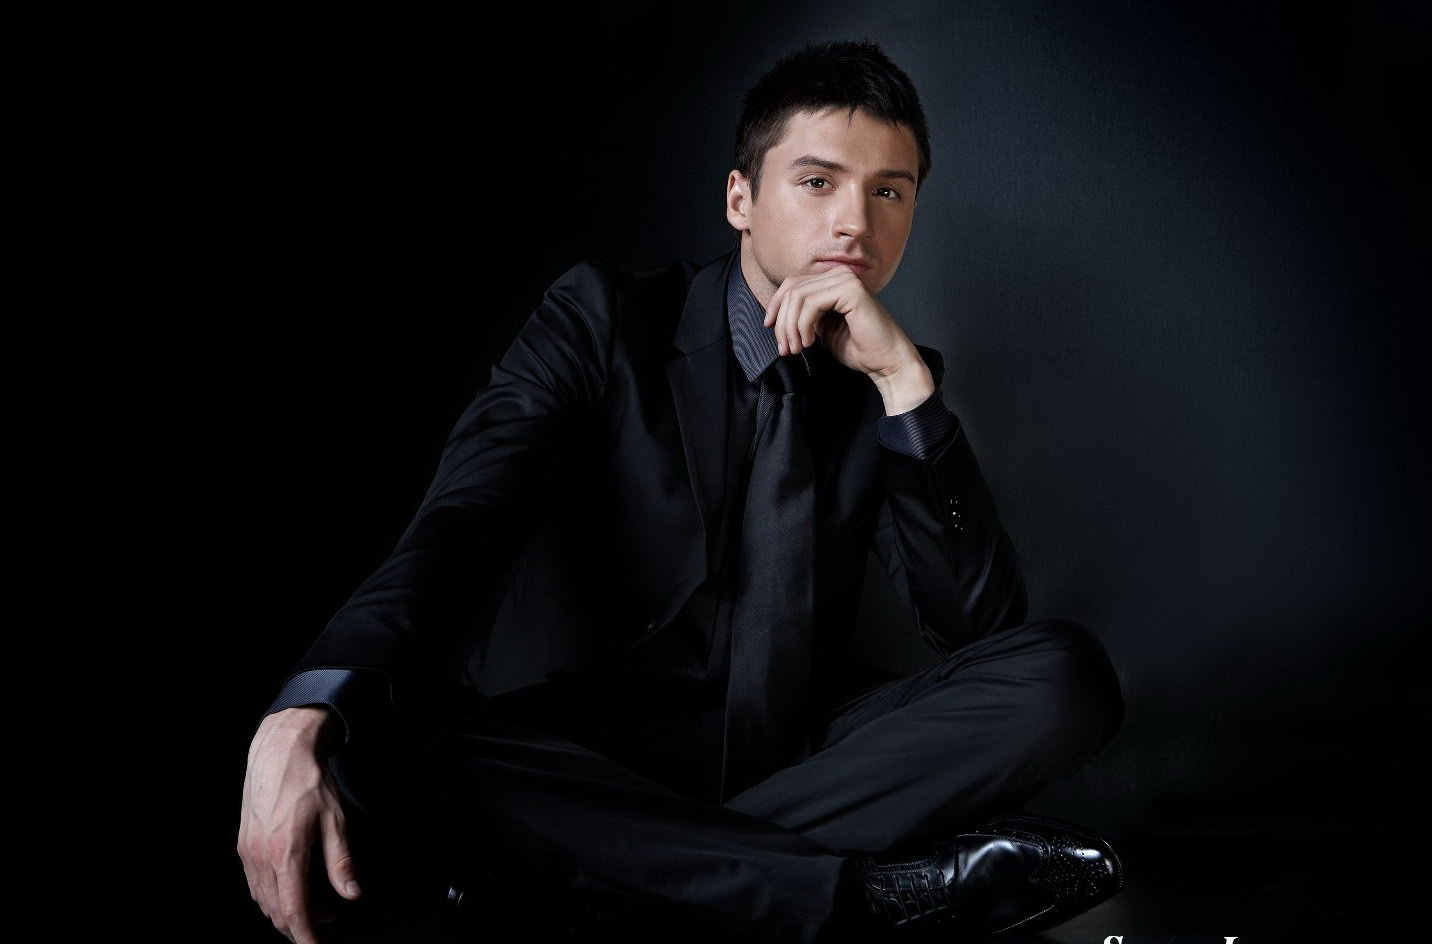 http://www.theplace.ru/archive/sergey_lazarev/img/63edef82a06e_www_hqp.jpg